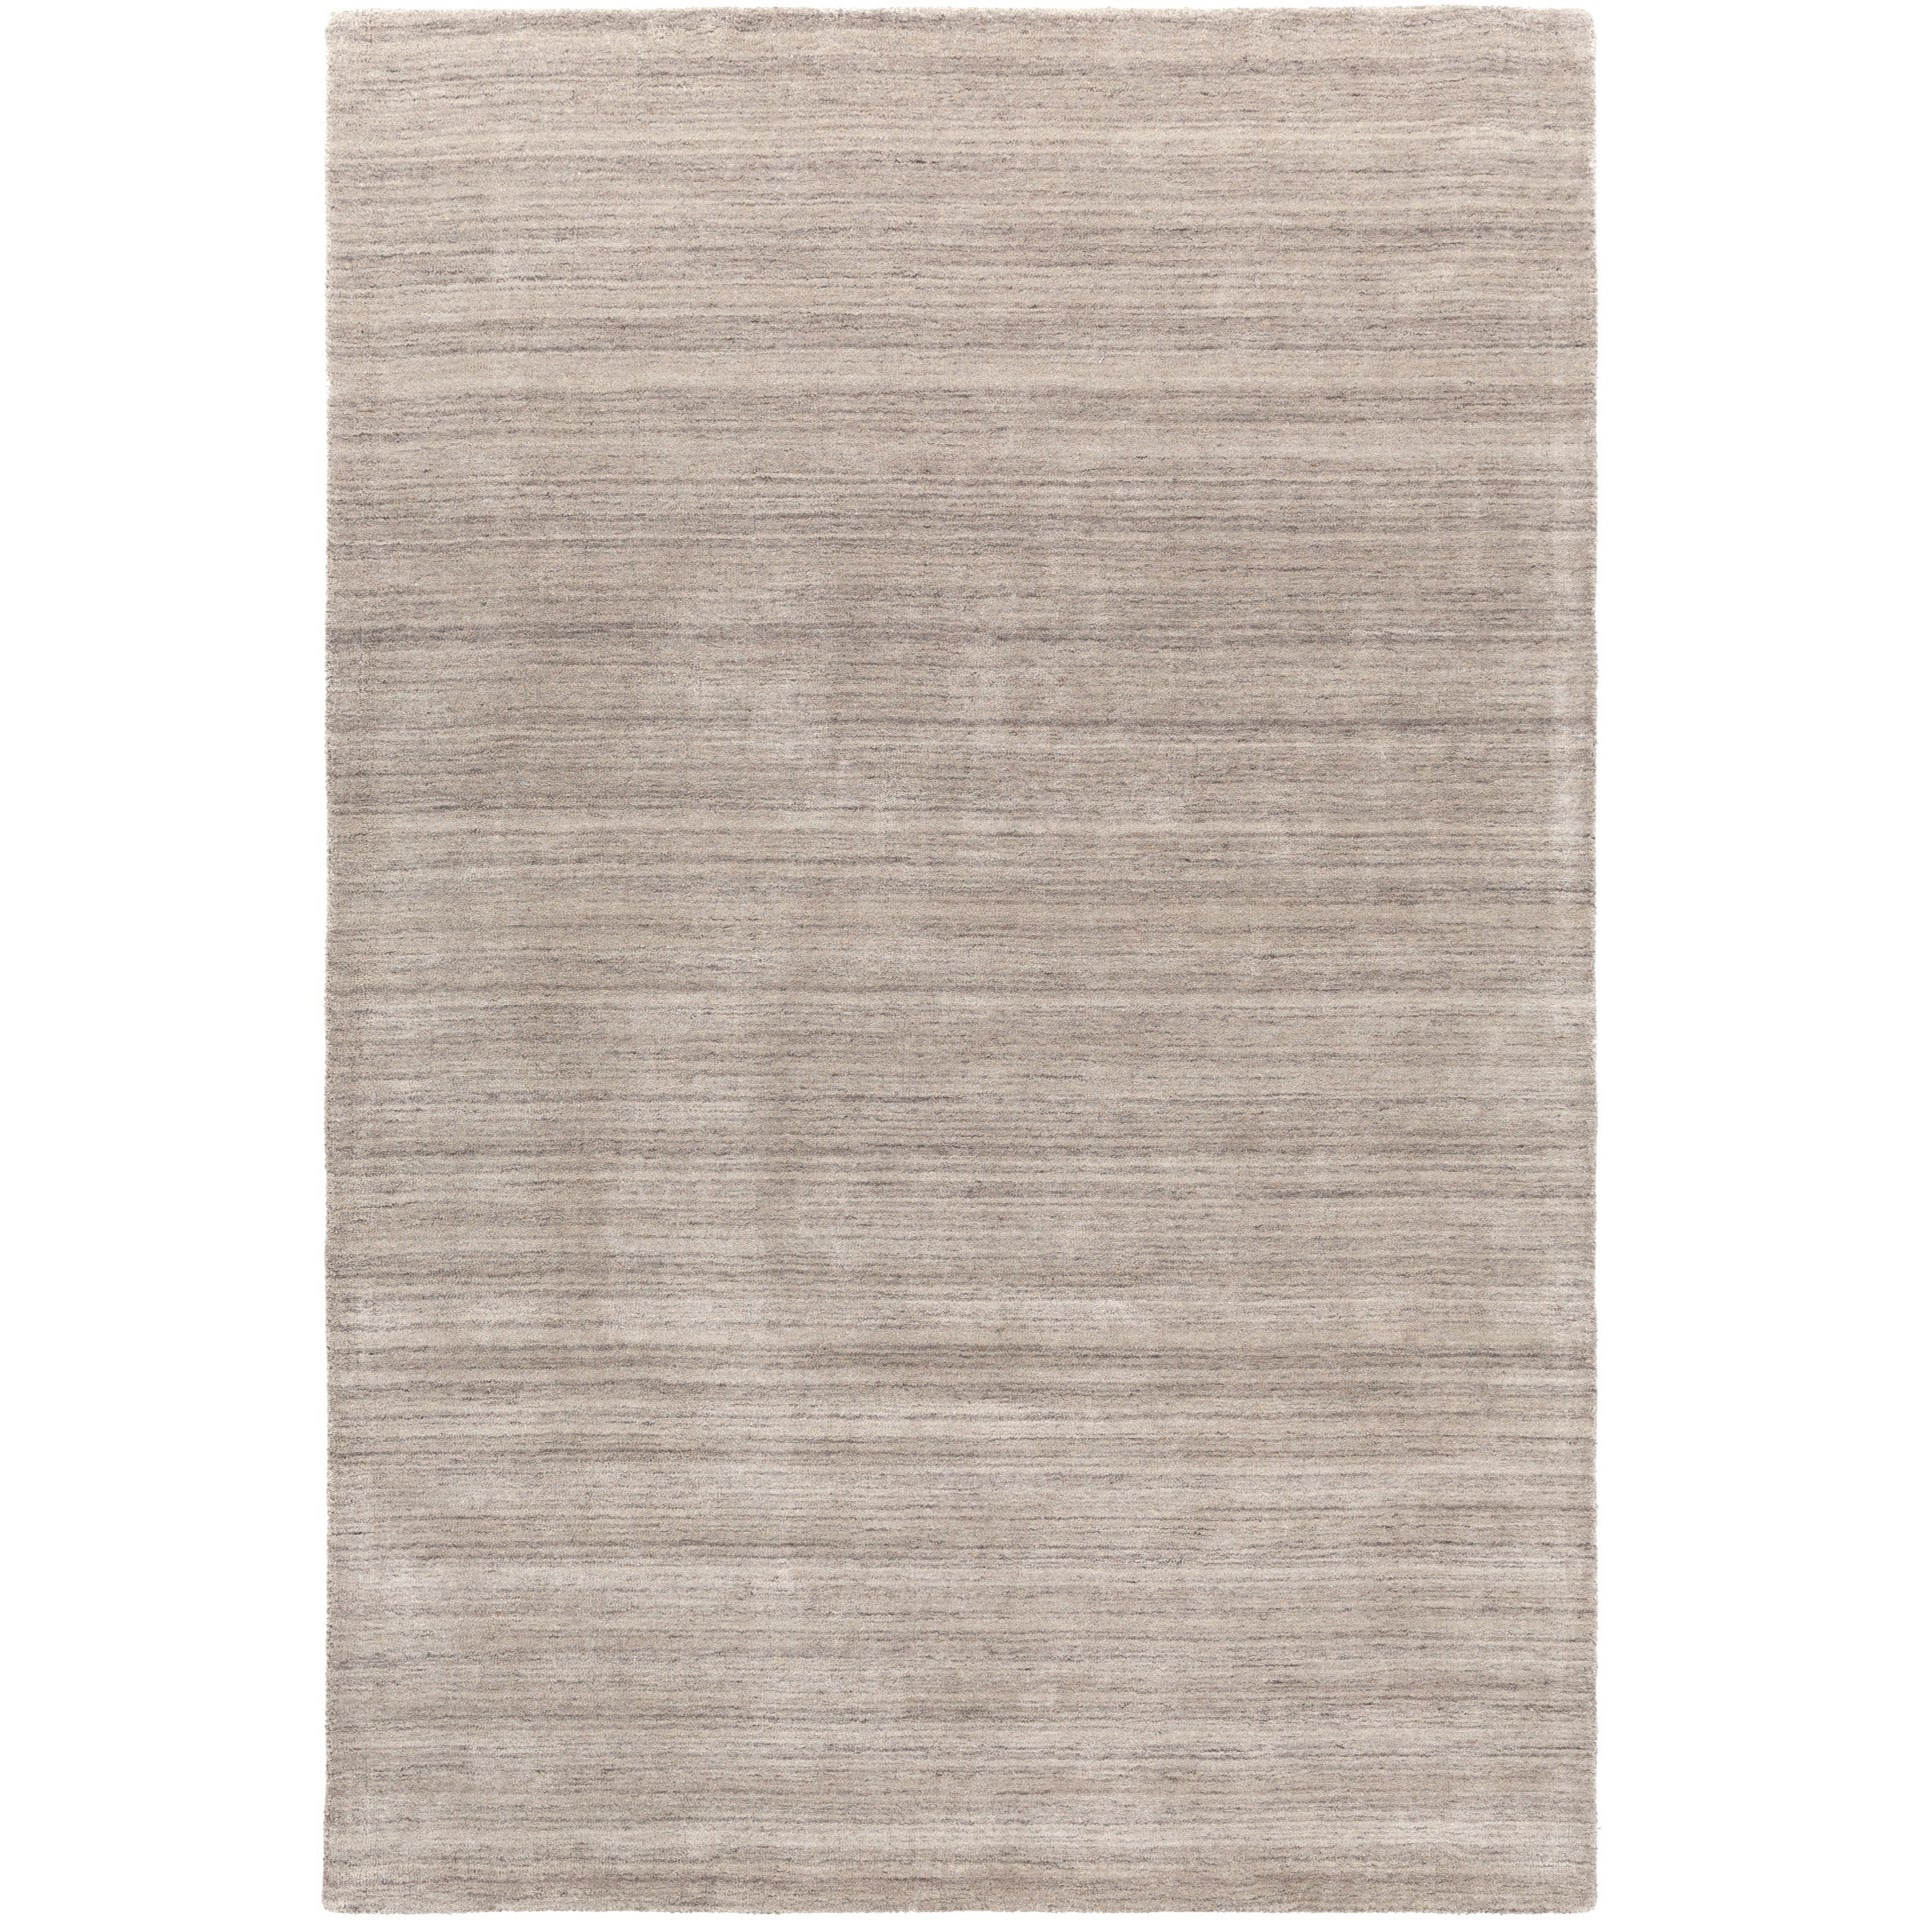 Adyant 8' x 10' Rug by Surya at SuperStore